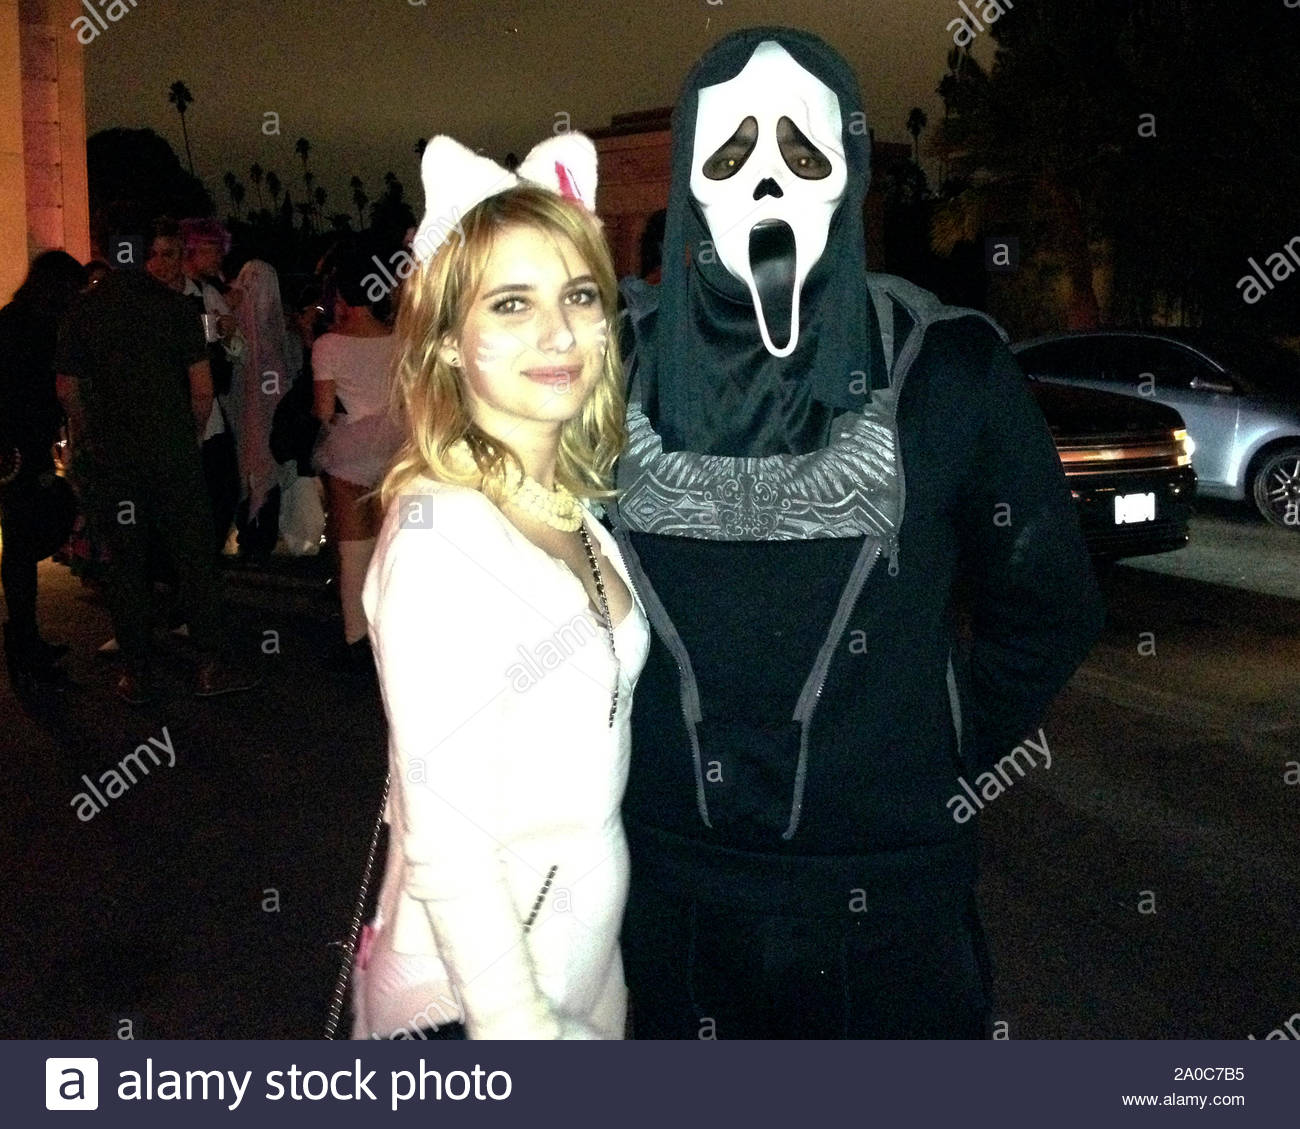 Hollywood Ca Actress Emma Roberts Seen Dressed Like A Cute Kitty Cat As She Hits A Halloween Party At Hollywood Forever Cemetery Emma Was Seen With A Masked Companion Wearing The